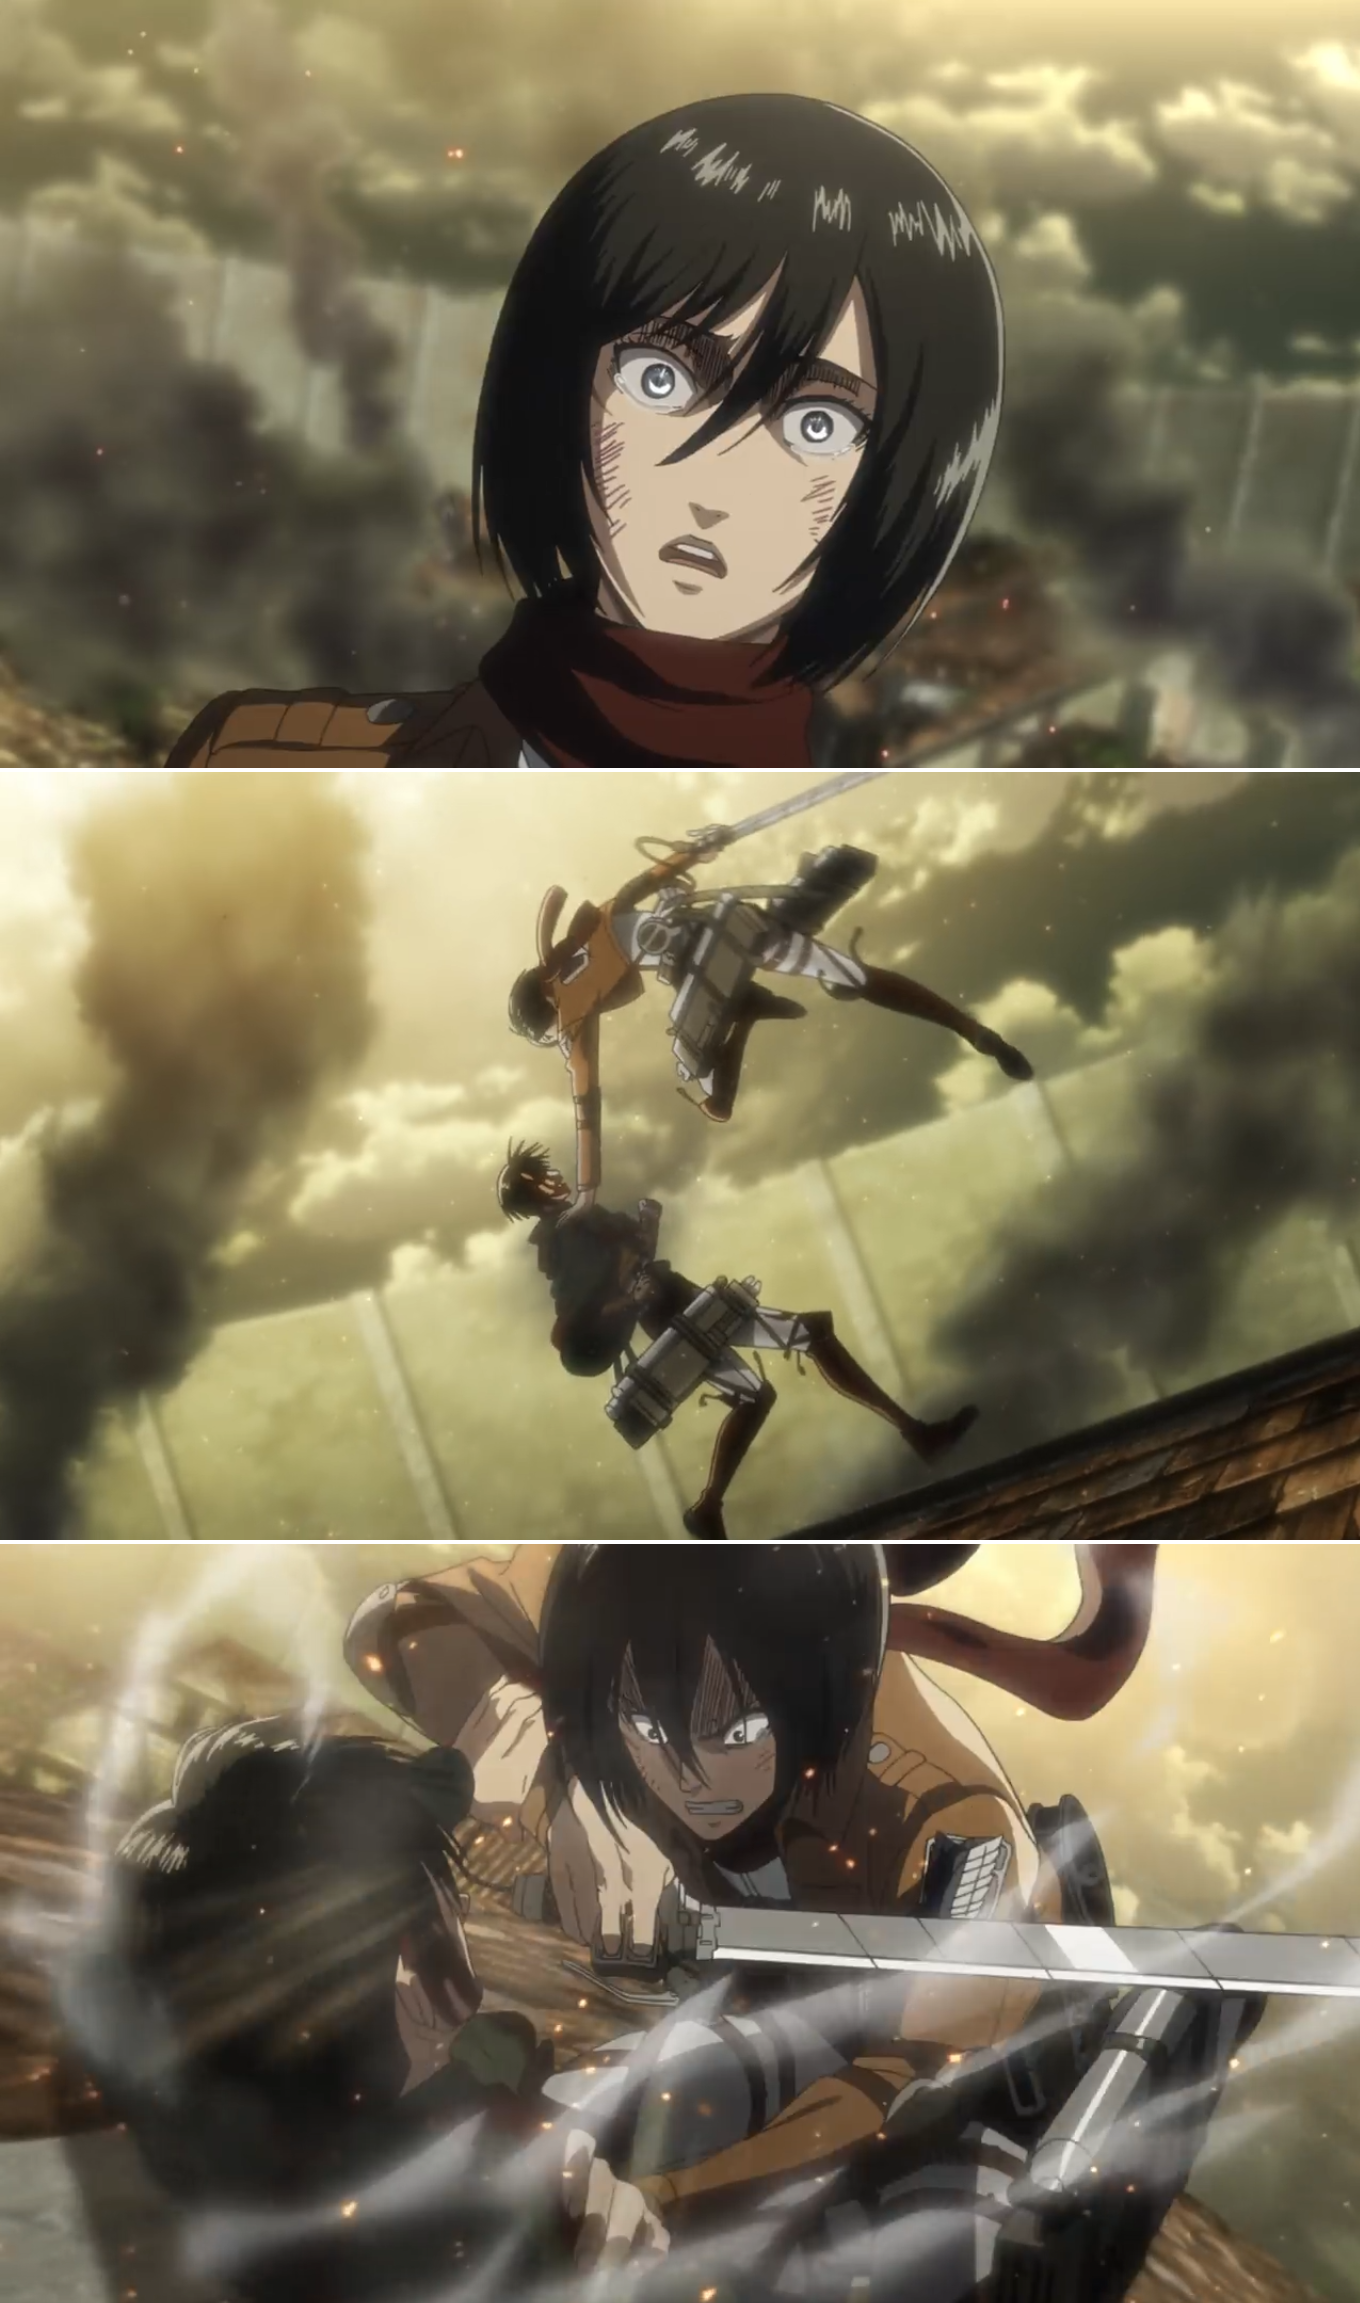 Mikasa vs Levi AoT season 3 Attack on titan anime